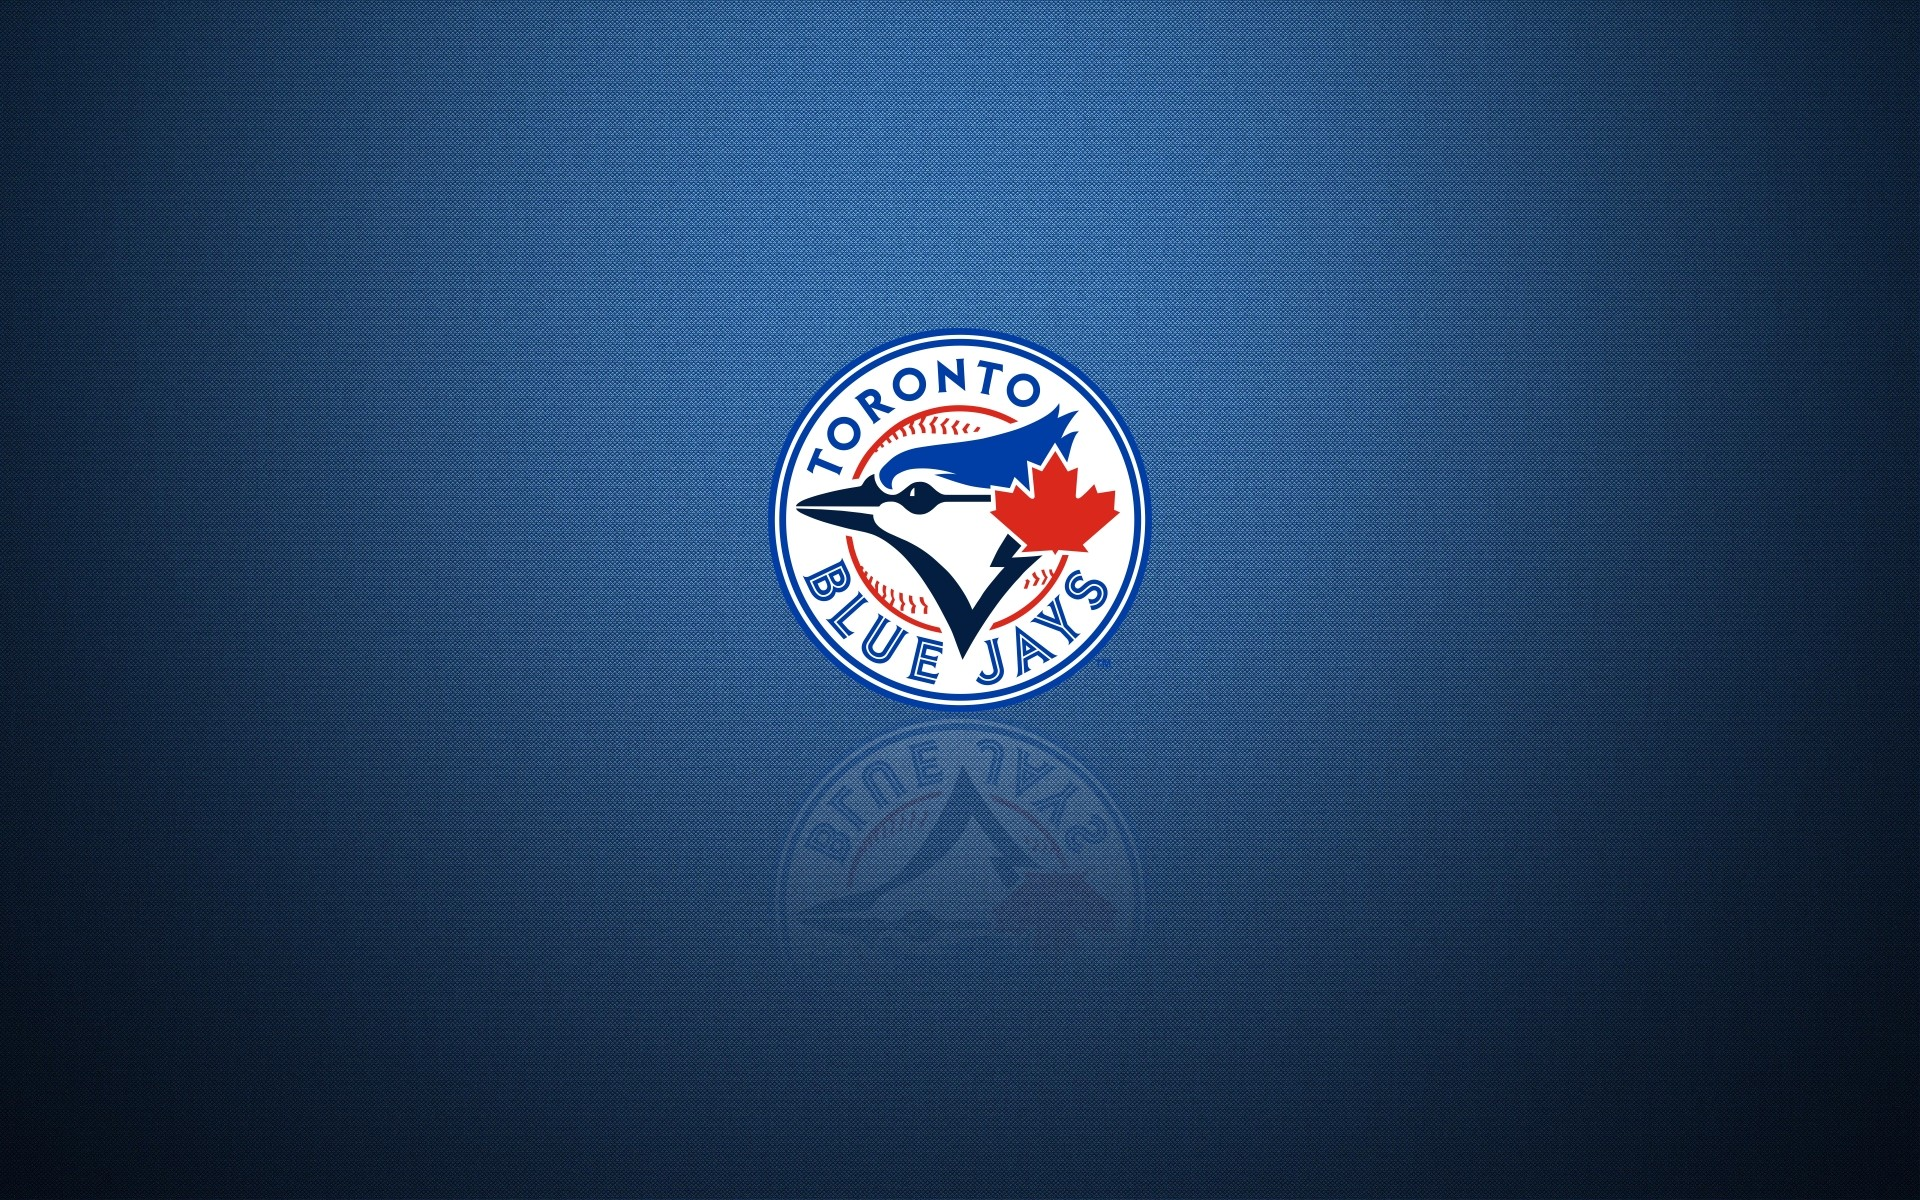 1920x1200 Toronto Blue Jays images Toronto Blue Jays HD wallpaper and background  photos